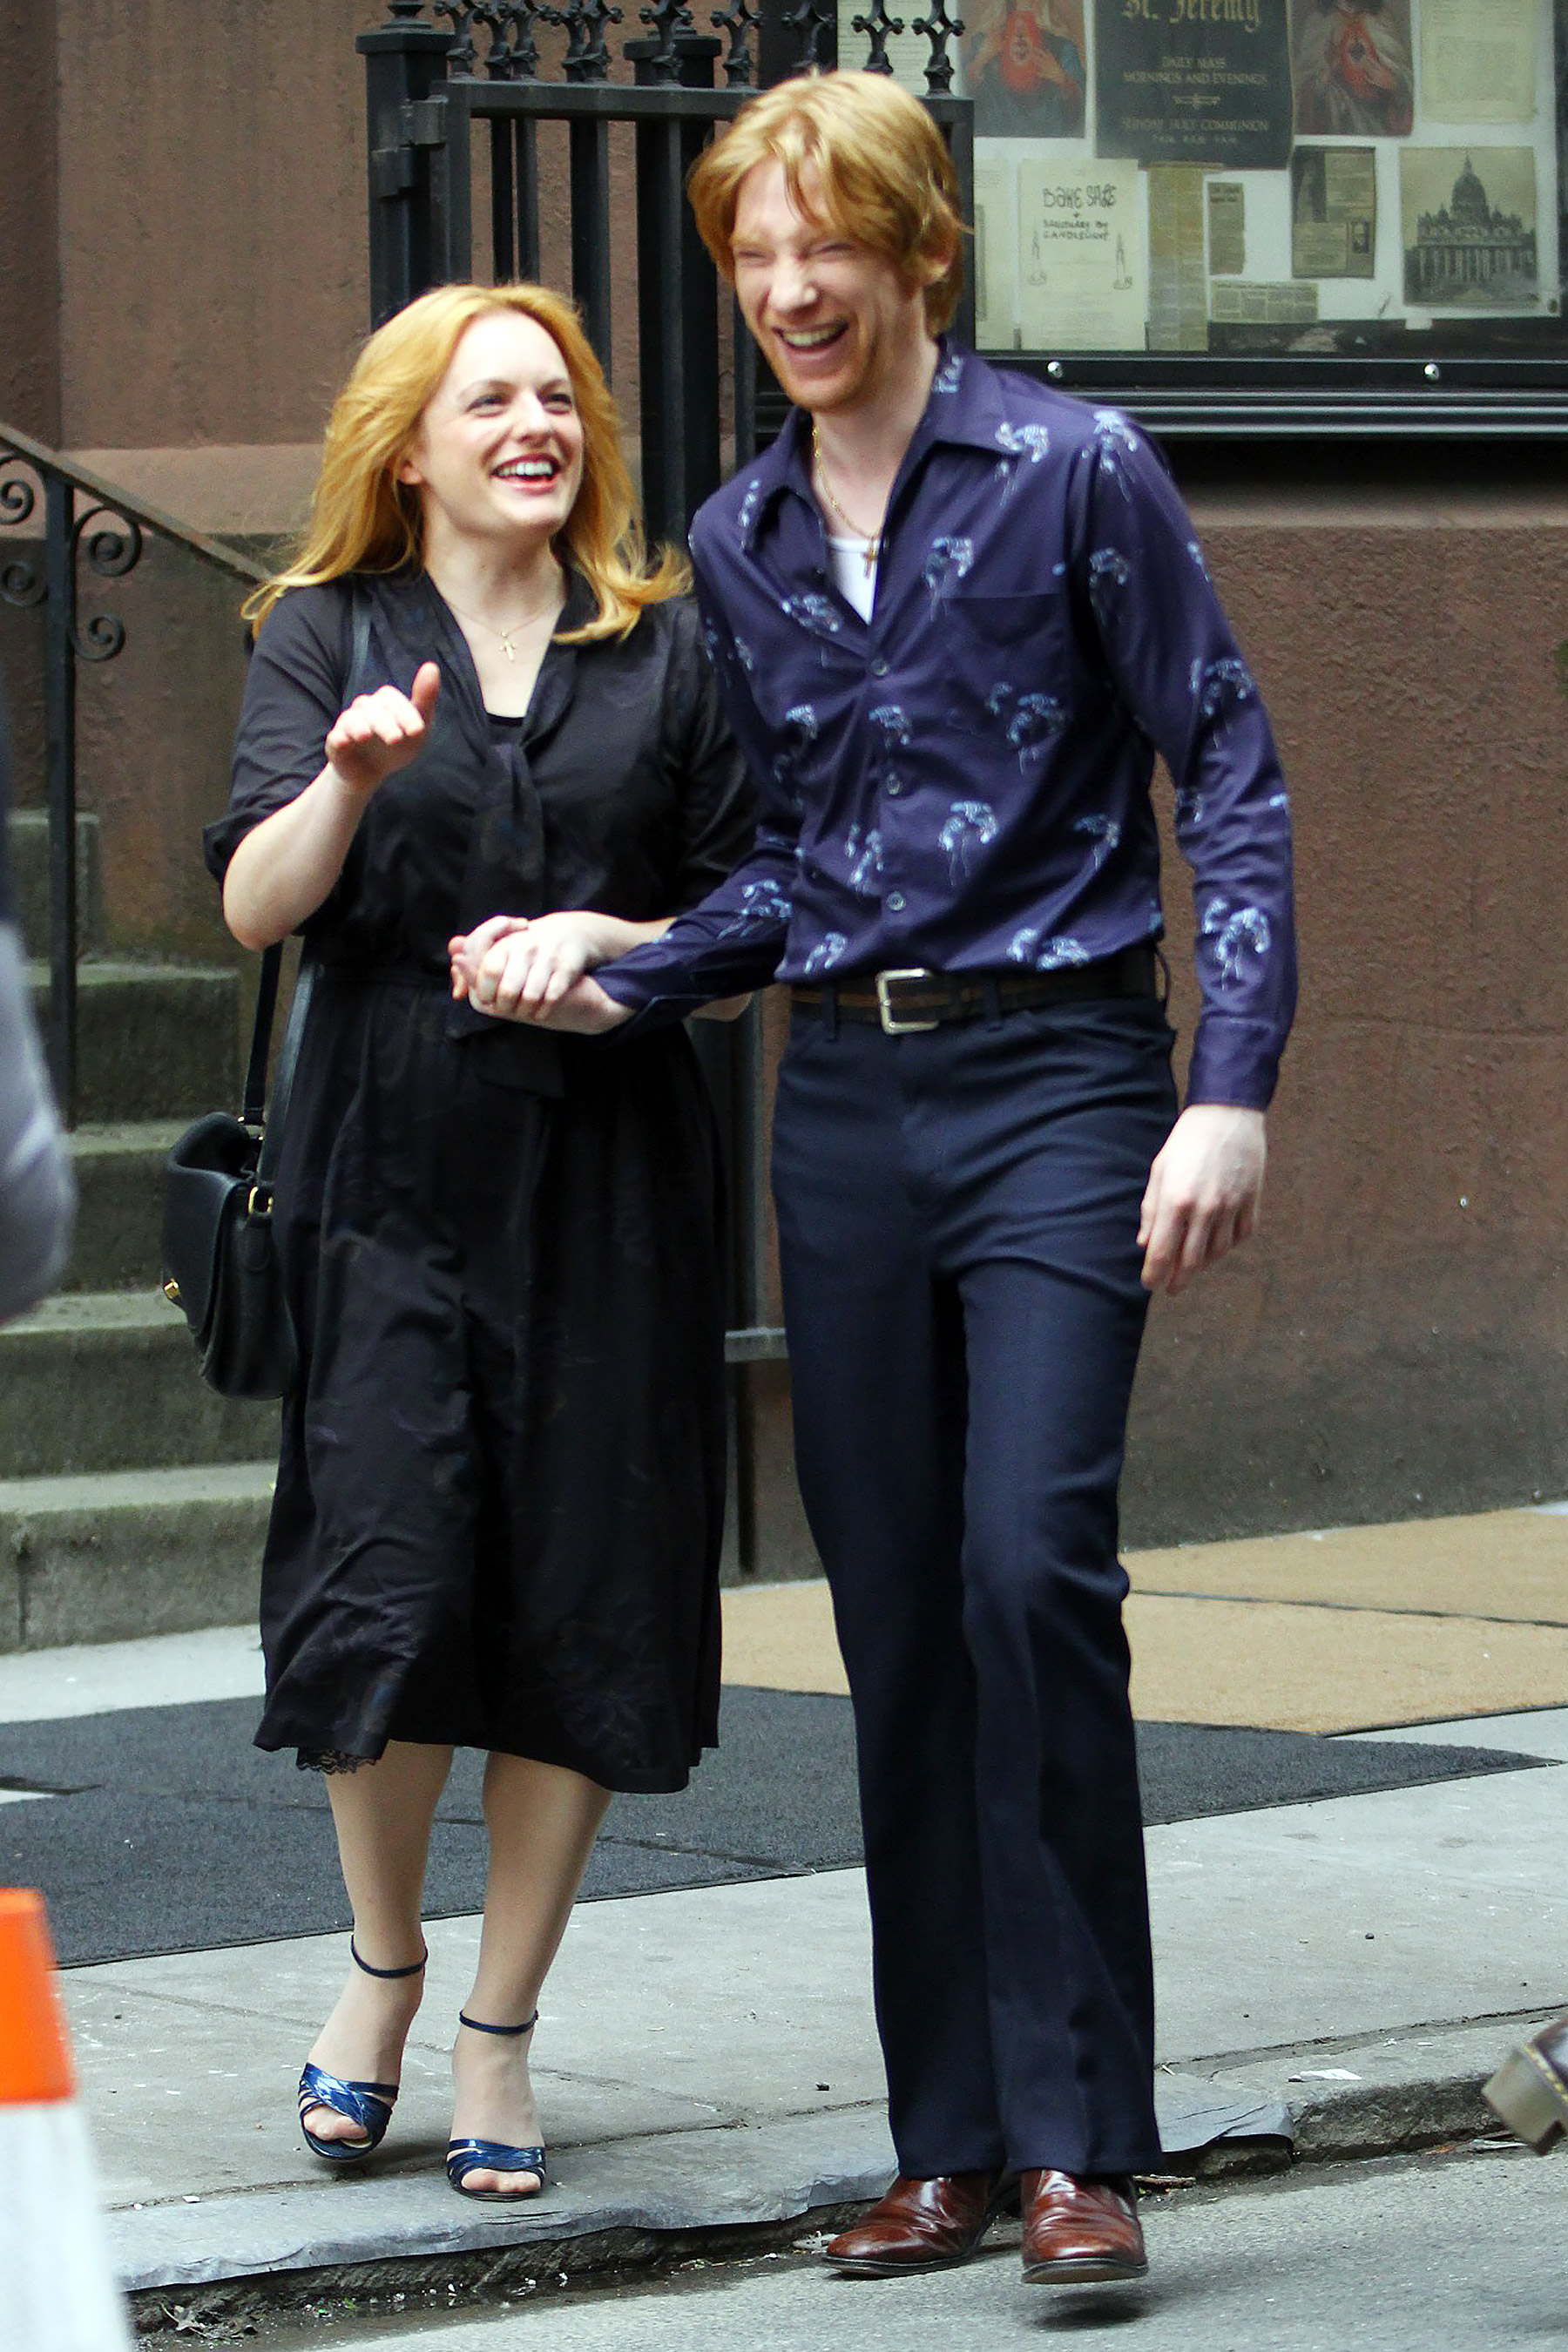 Elisabeth Moss and Domhnall Gleeson are caught in a candid moment while filming The Kitchen.